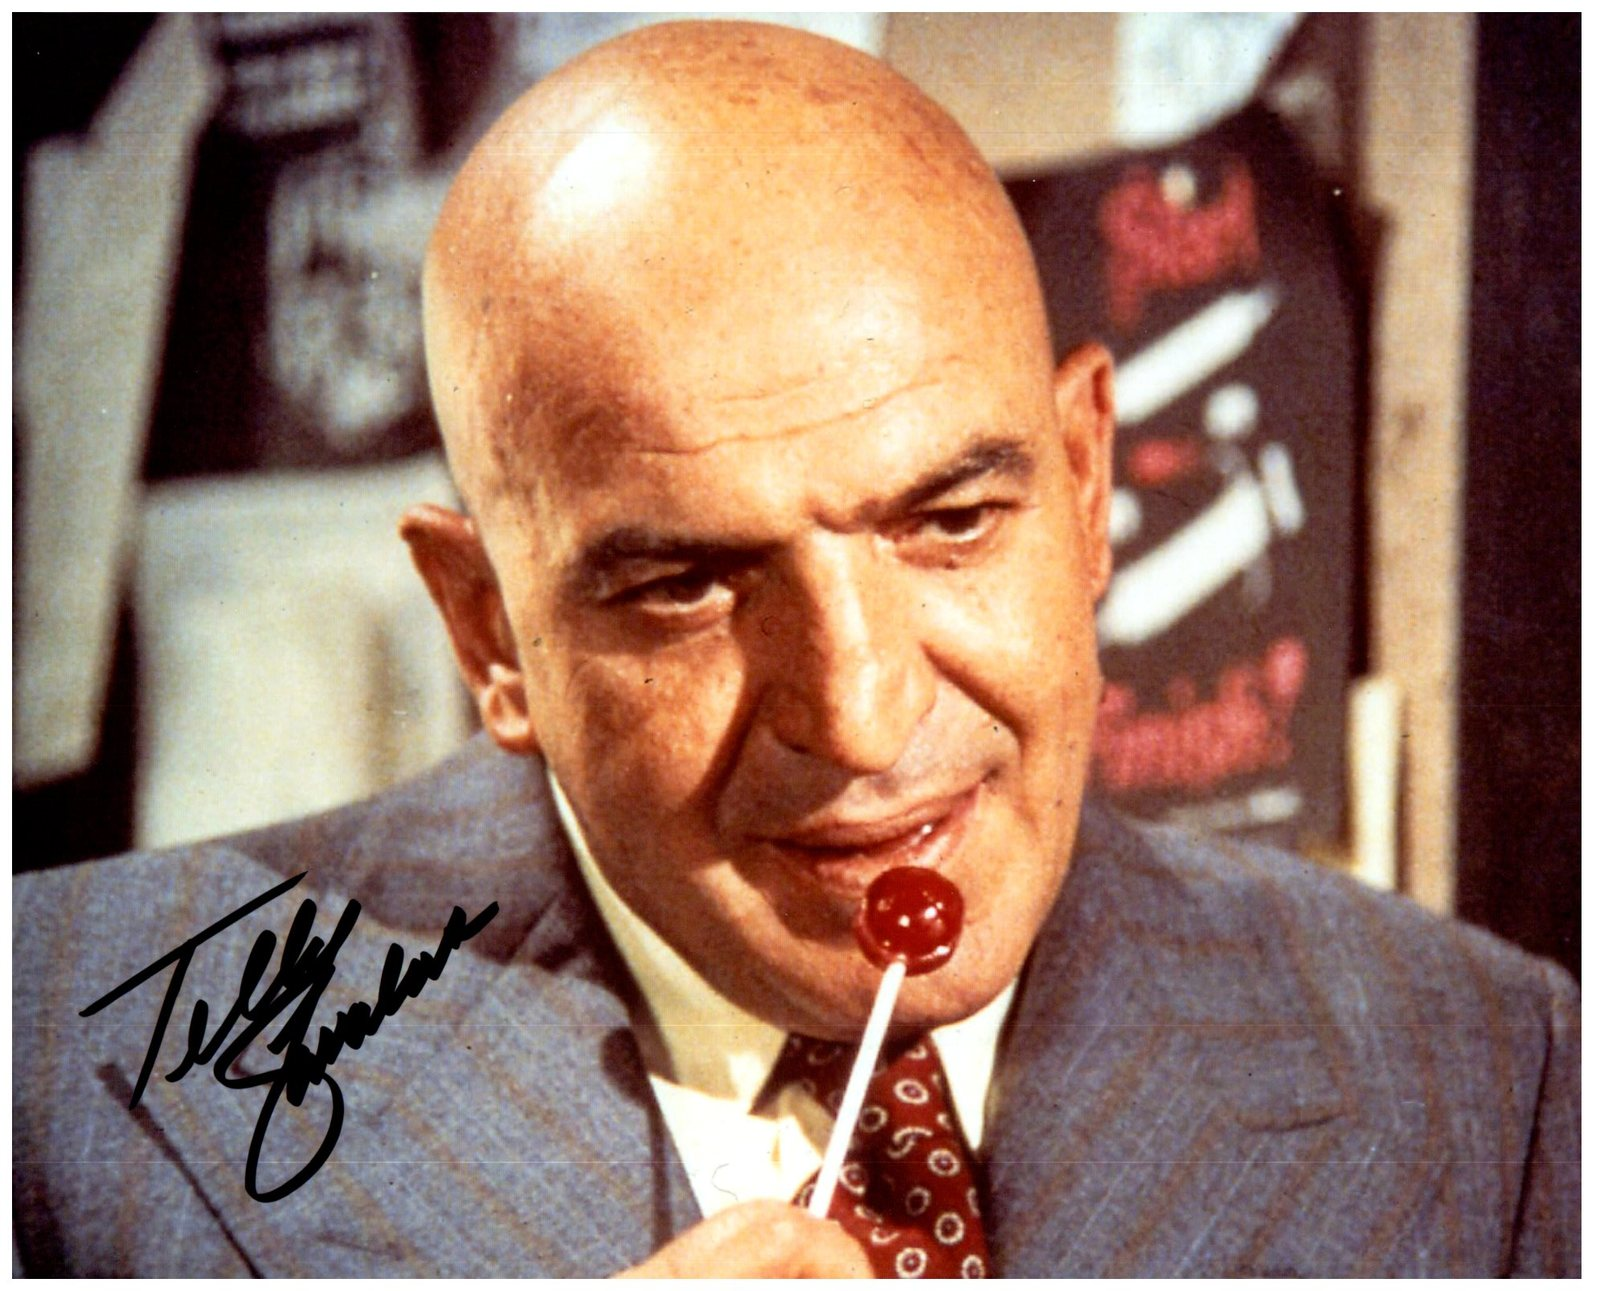 TELLY SAVALAS Signed Autographed 8X10 Photo w/ Certificate of Authenticity